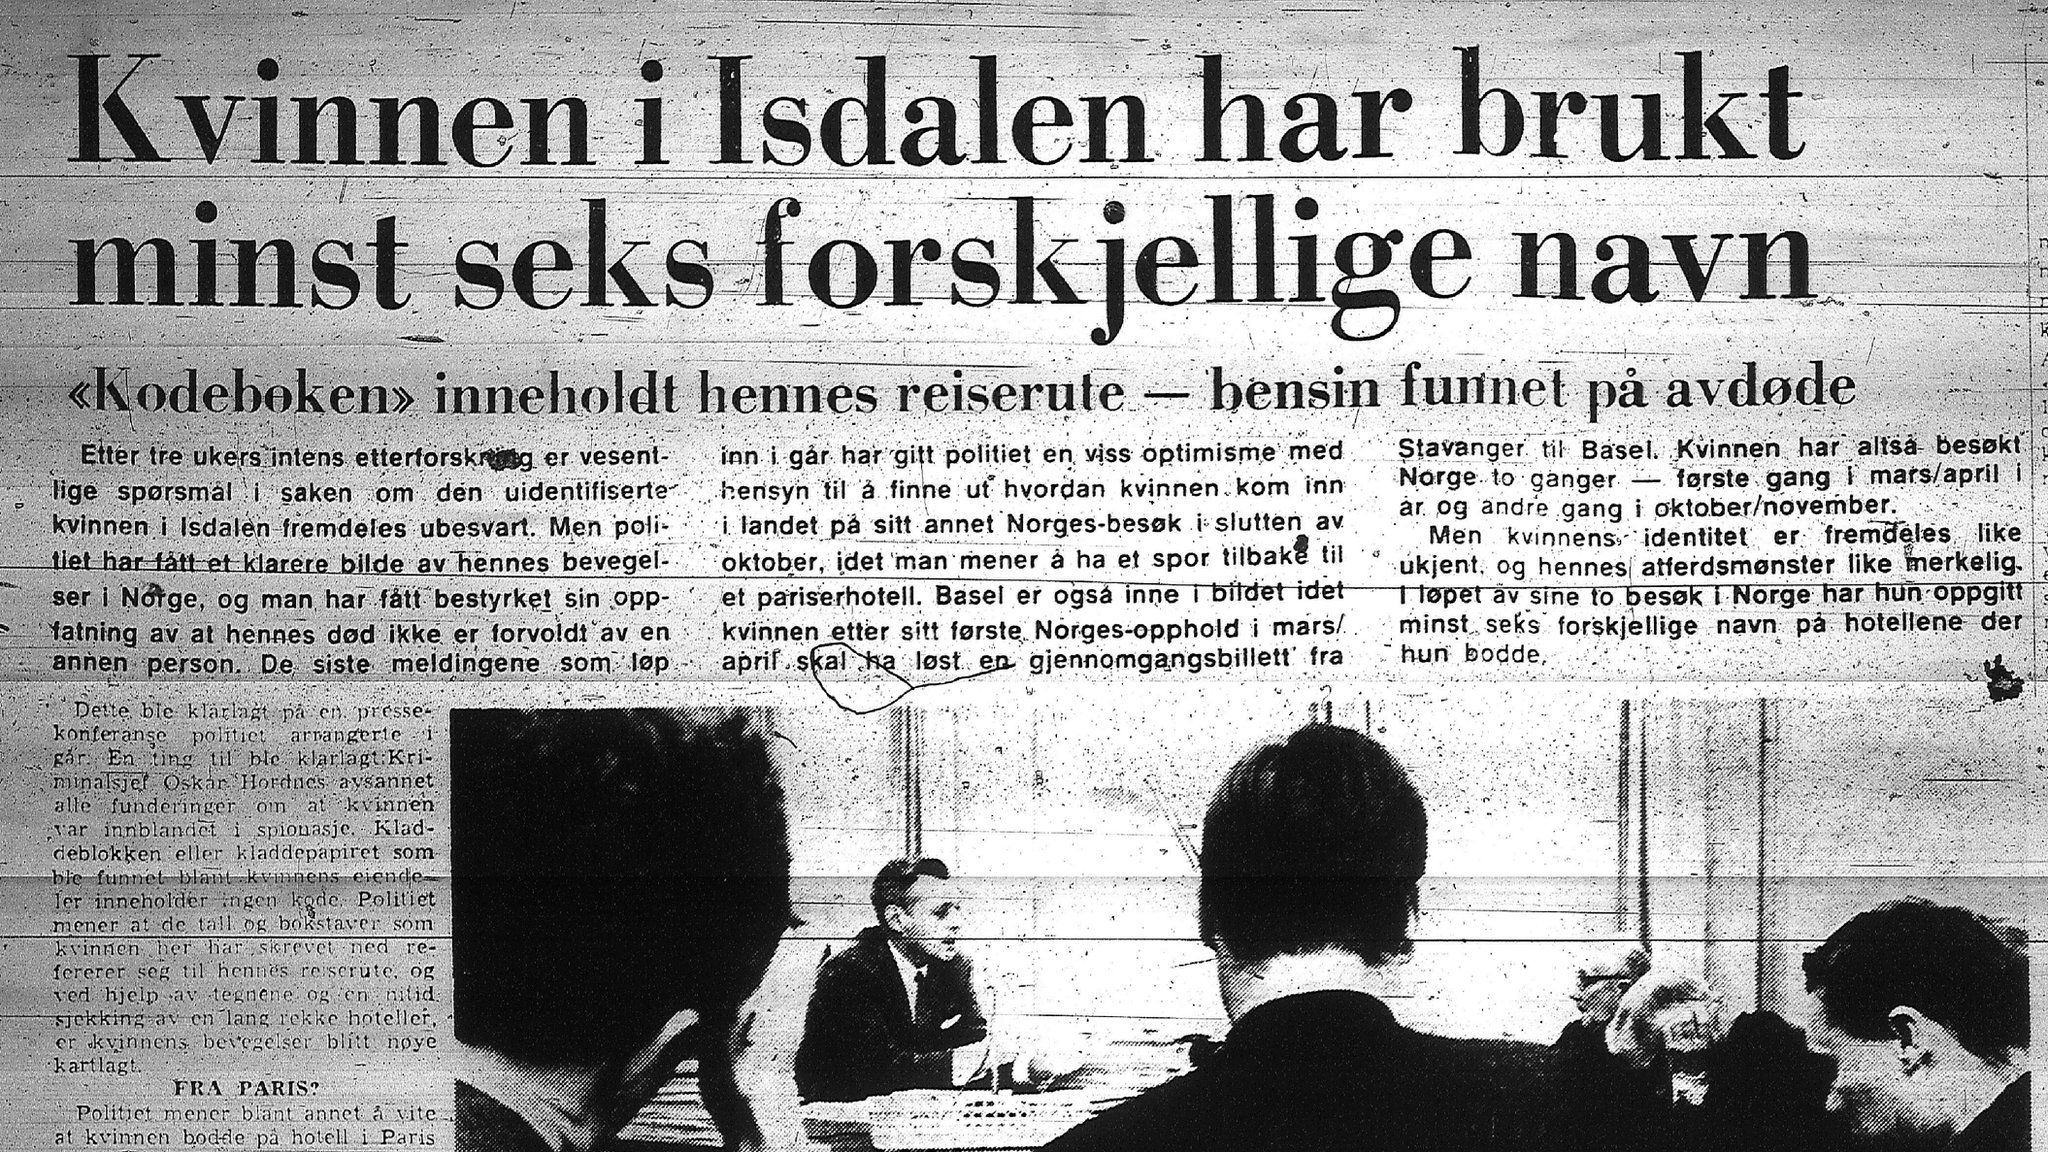 """A headline from Bergens Tidende on 23 December 1970 reads: """"The woman in Isdalen had at least six different aliases"""""""